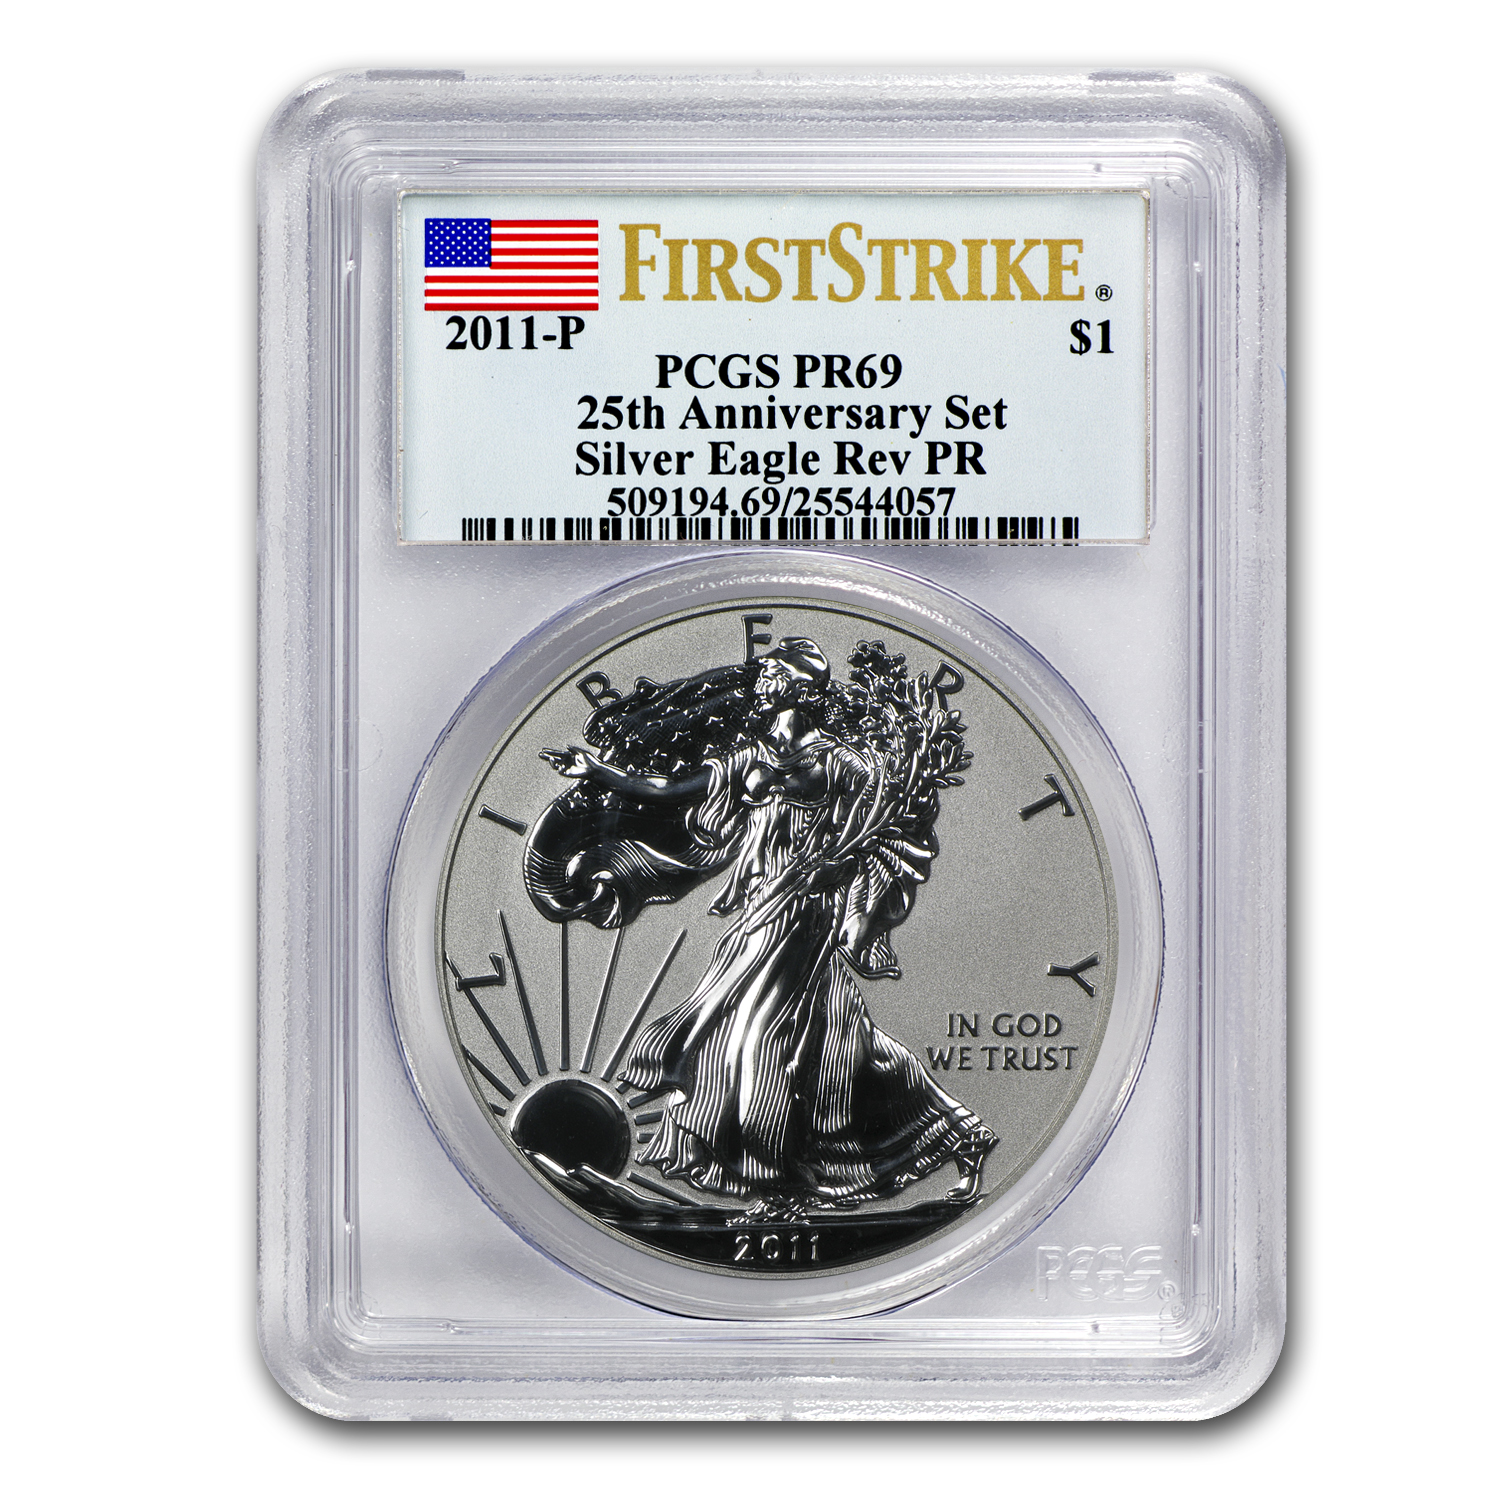 2011-P Reverse Proof Silver Eagle PR-69 PCGS (FS, Blue Label)